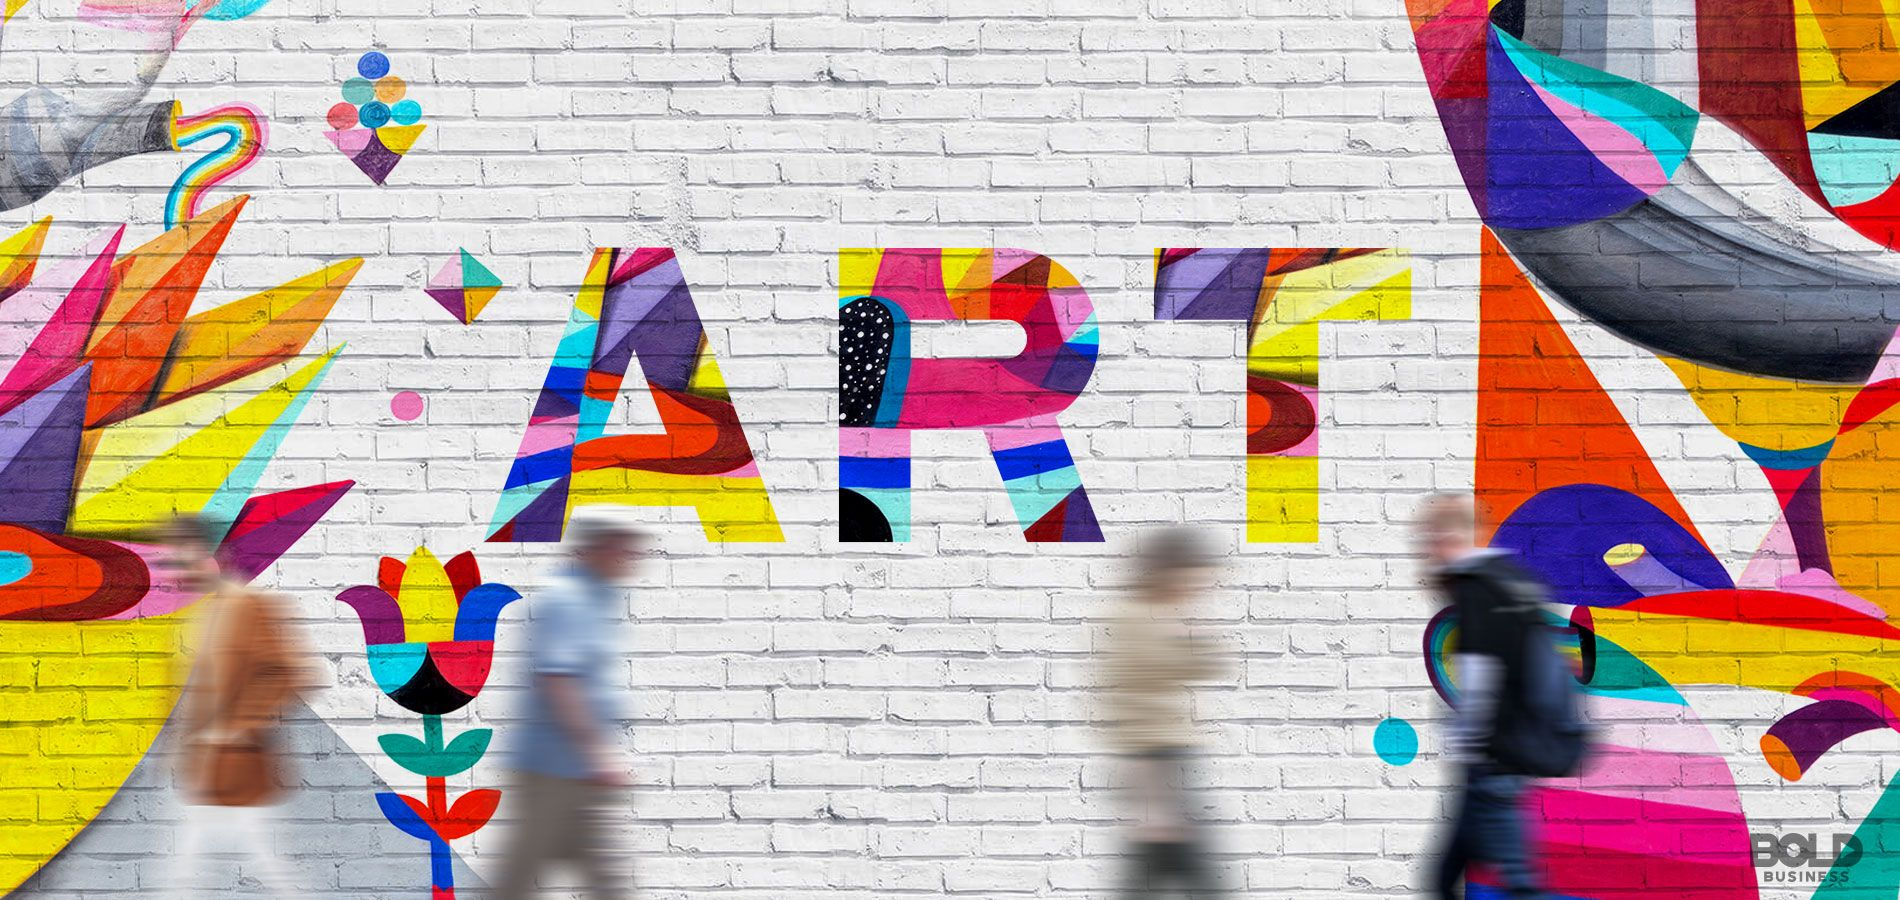 Art and Its Impact on Society: Art Districts Revitalizing Communities